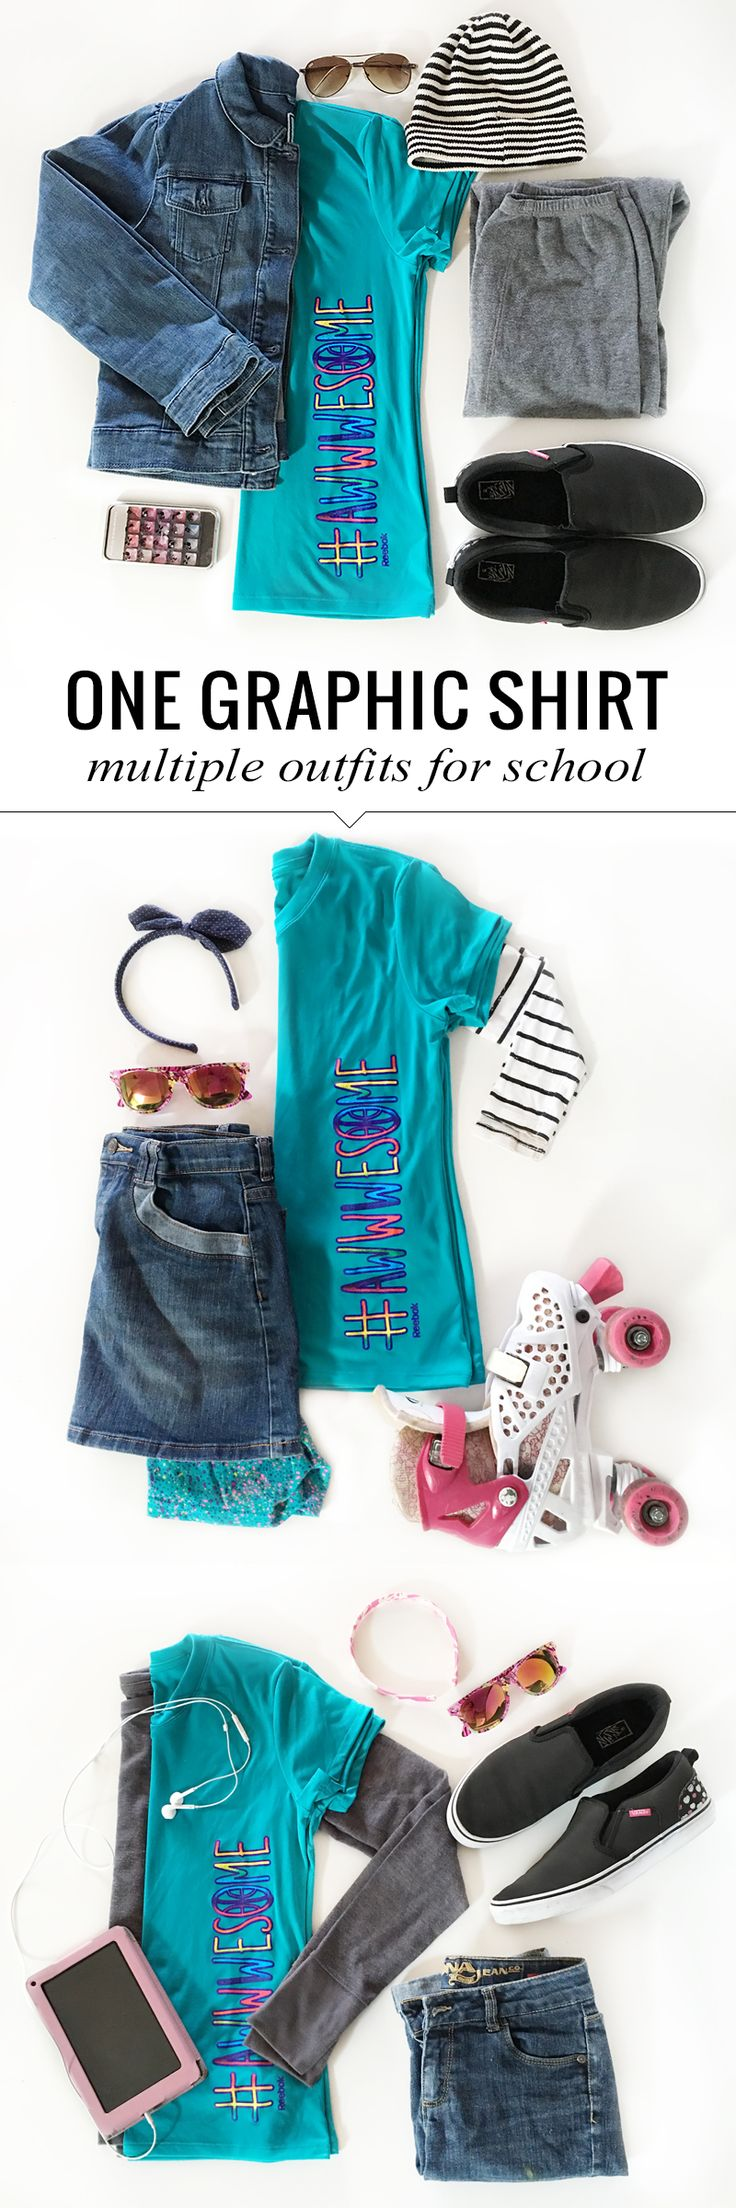 Back to School Shopping- 5 Tips to a Killer Wardrobe and multiple school looks with a single graphic tee for girls